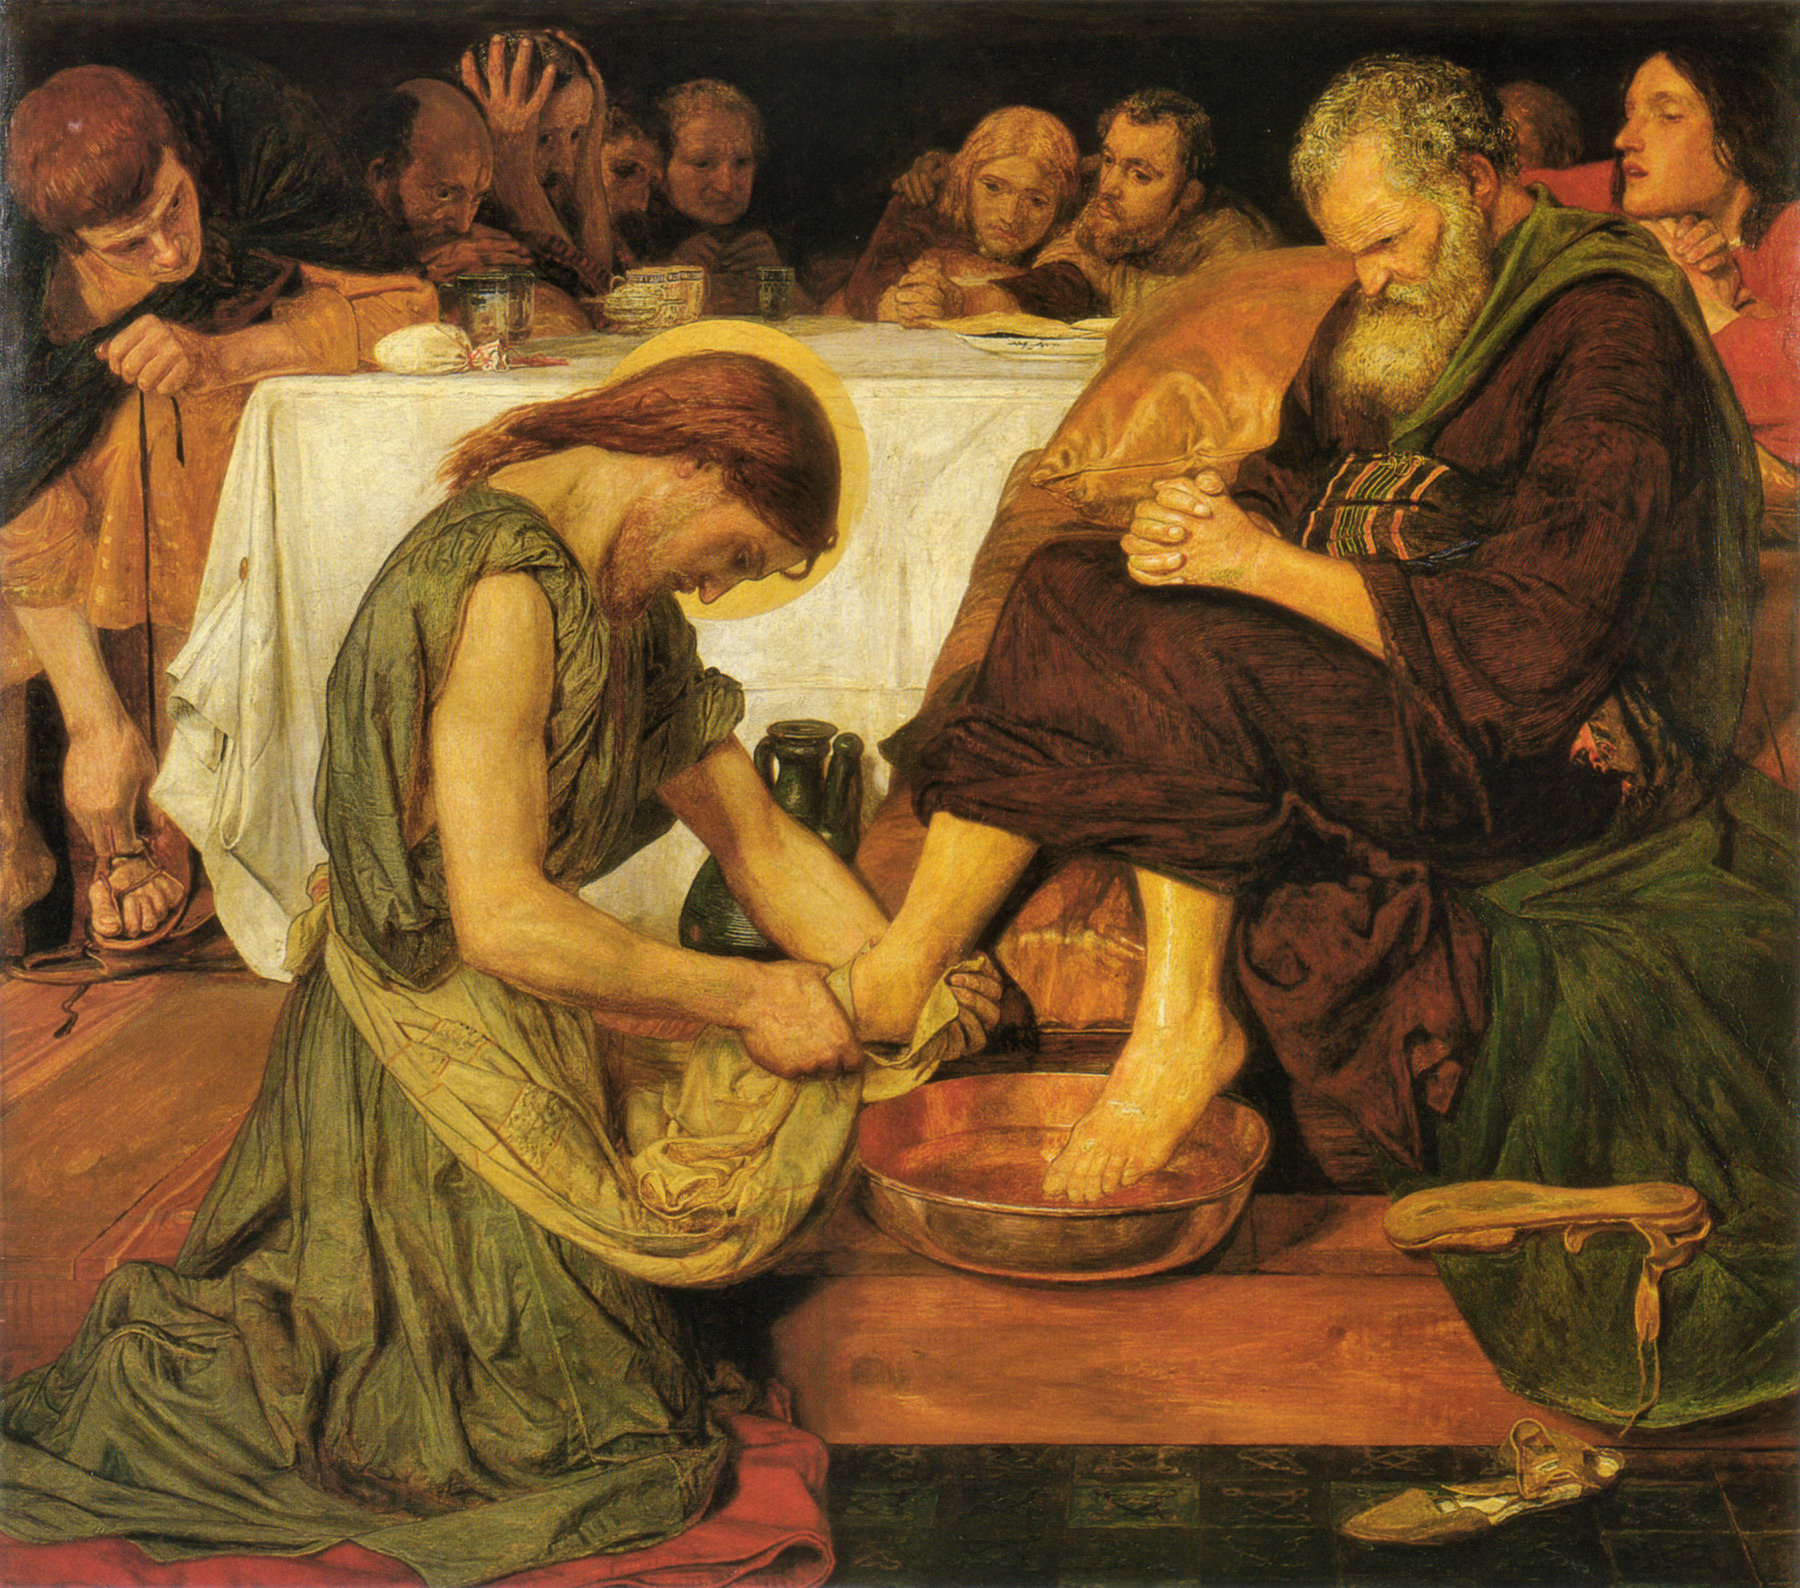 Jesus_washing_Peter's_feet (1)